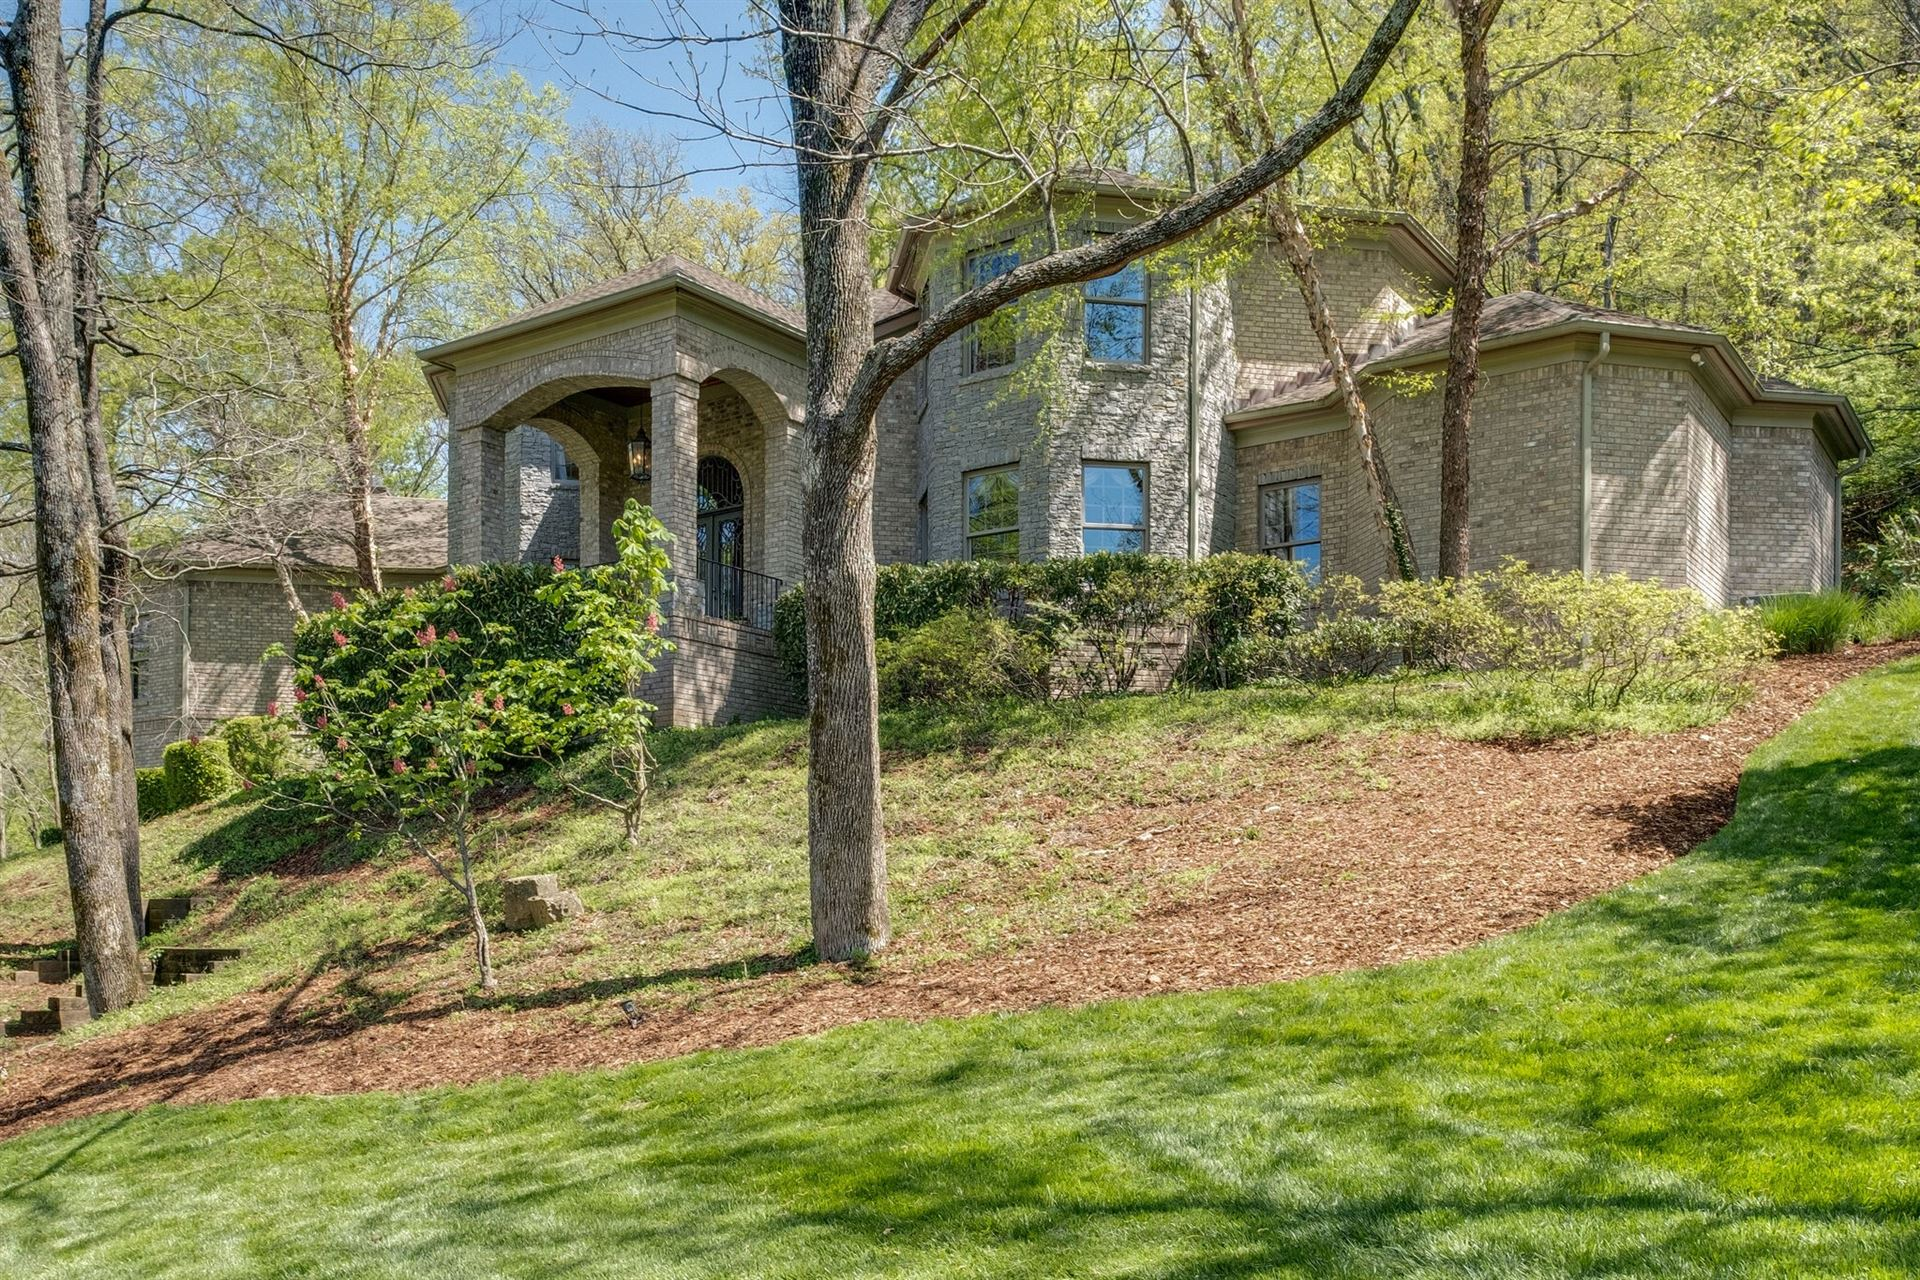 Photo of 5026 High Valley Dr, Brentwood, TN 37027 (MLS # 2245522)